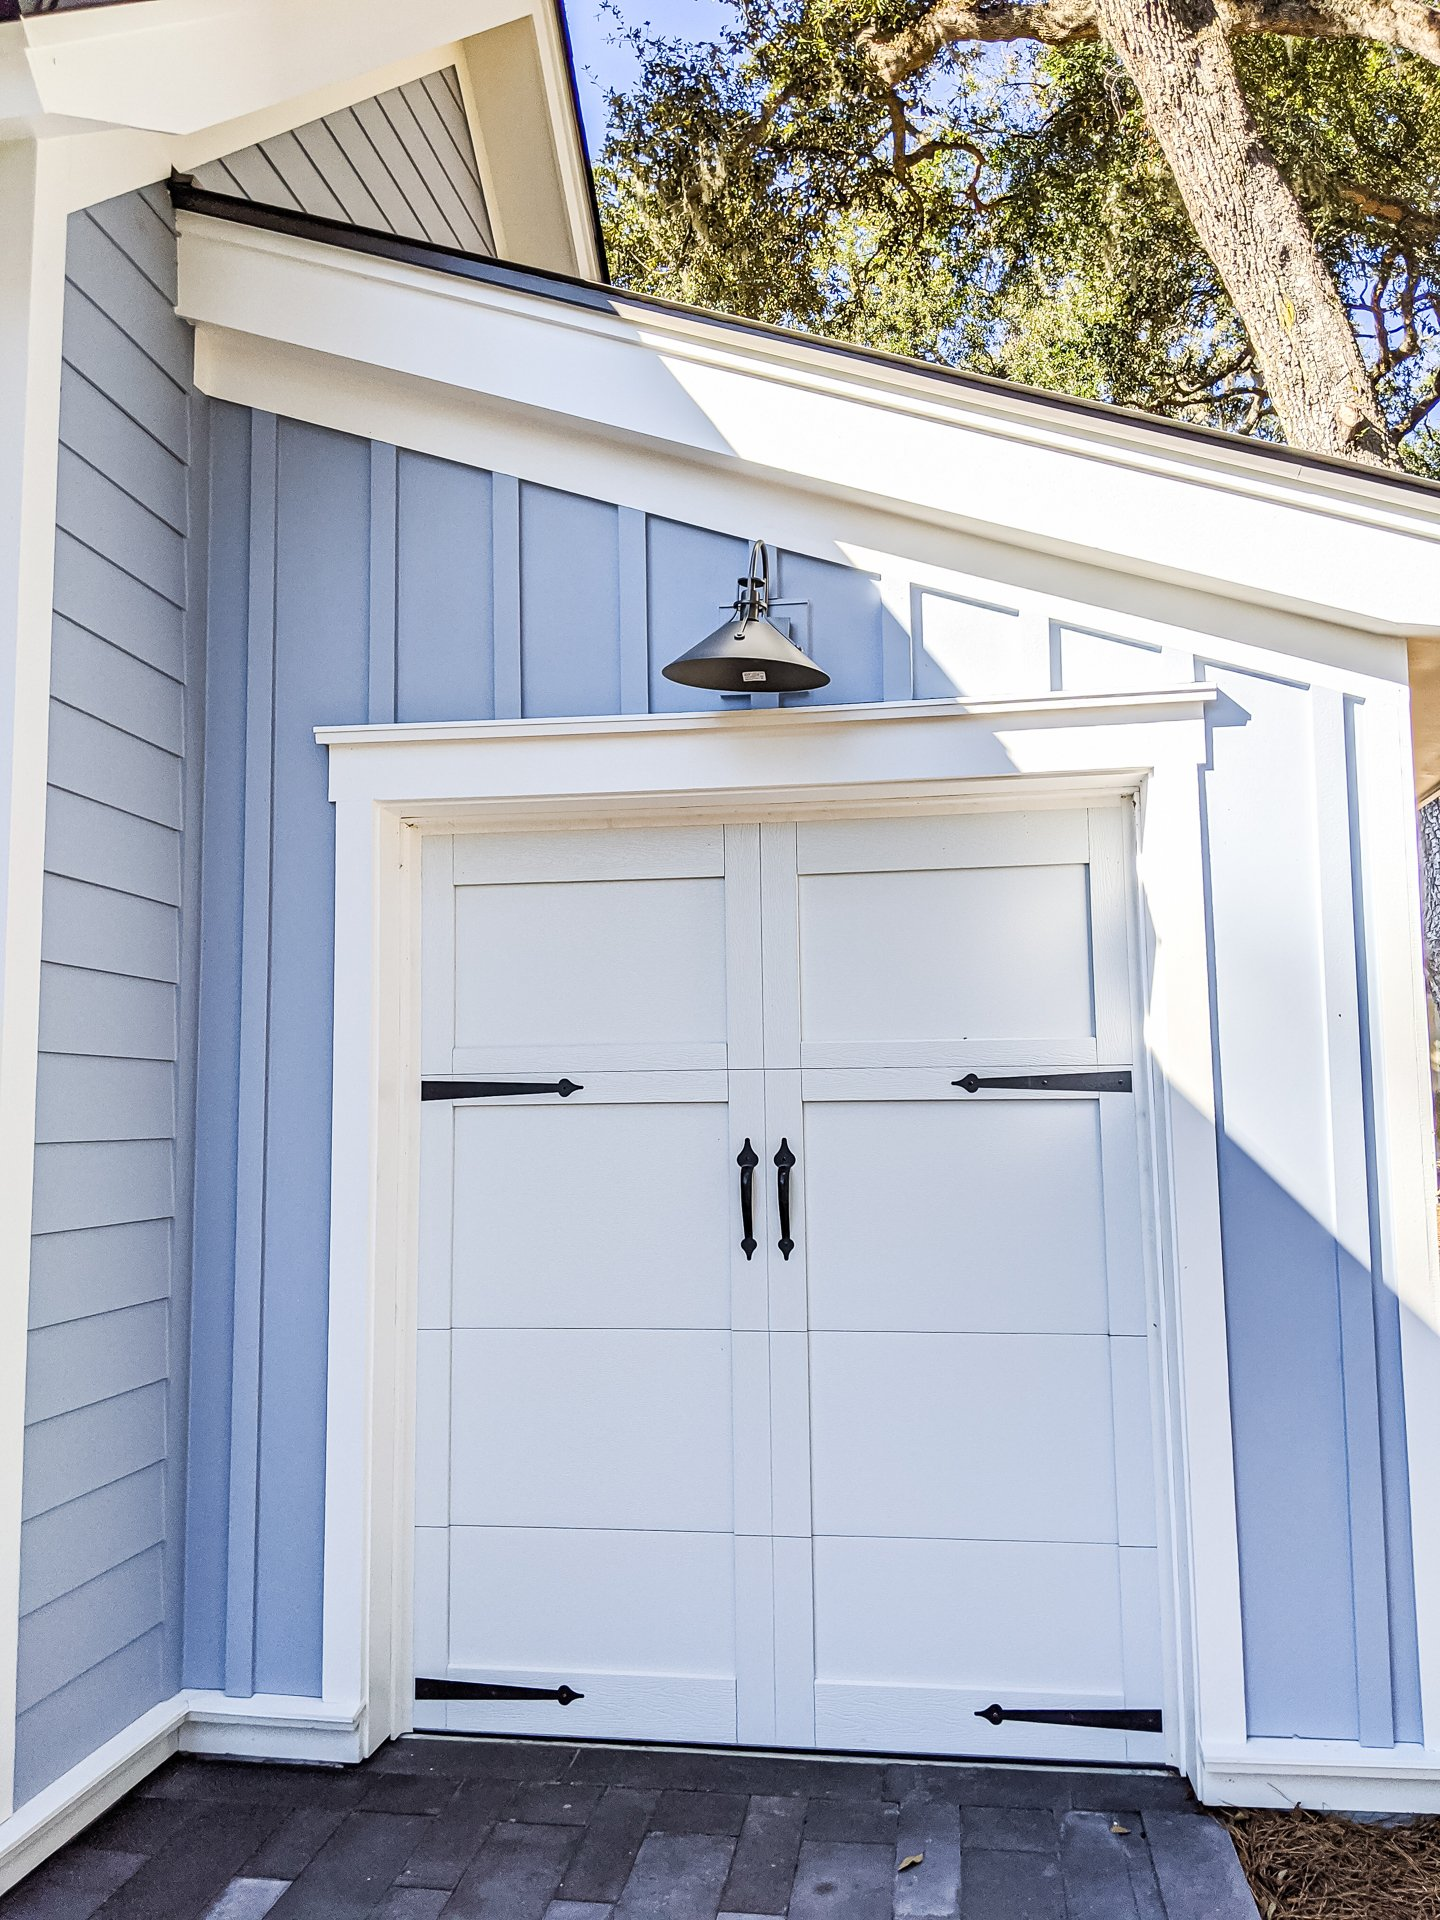 Garage door blue siding white trim